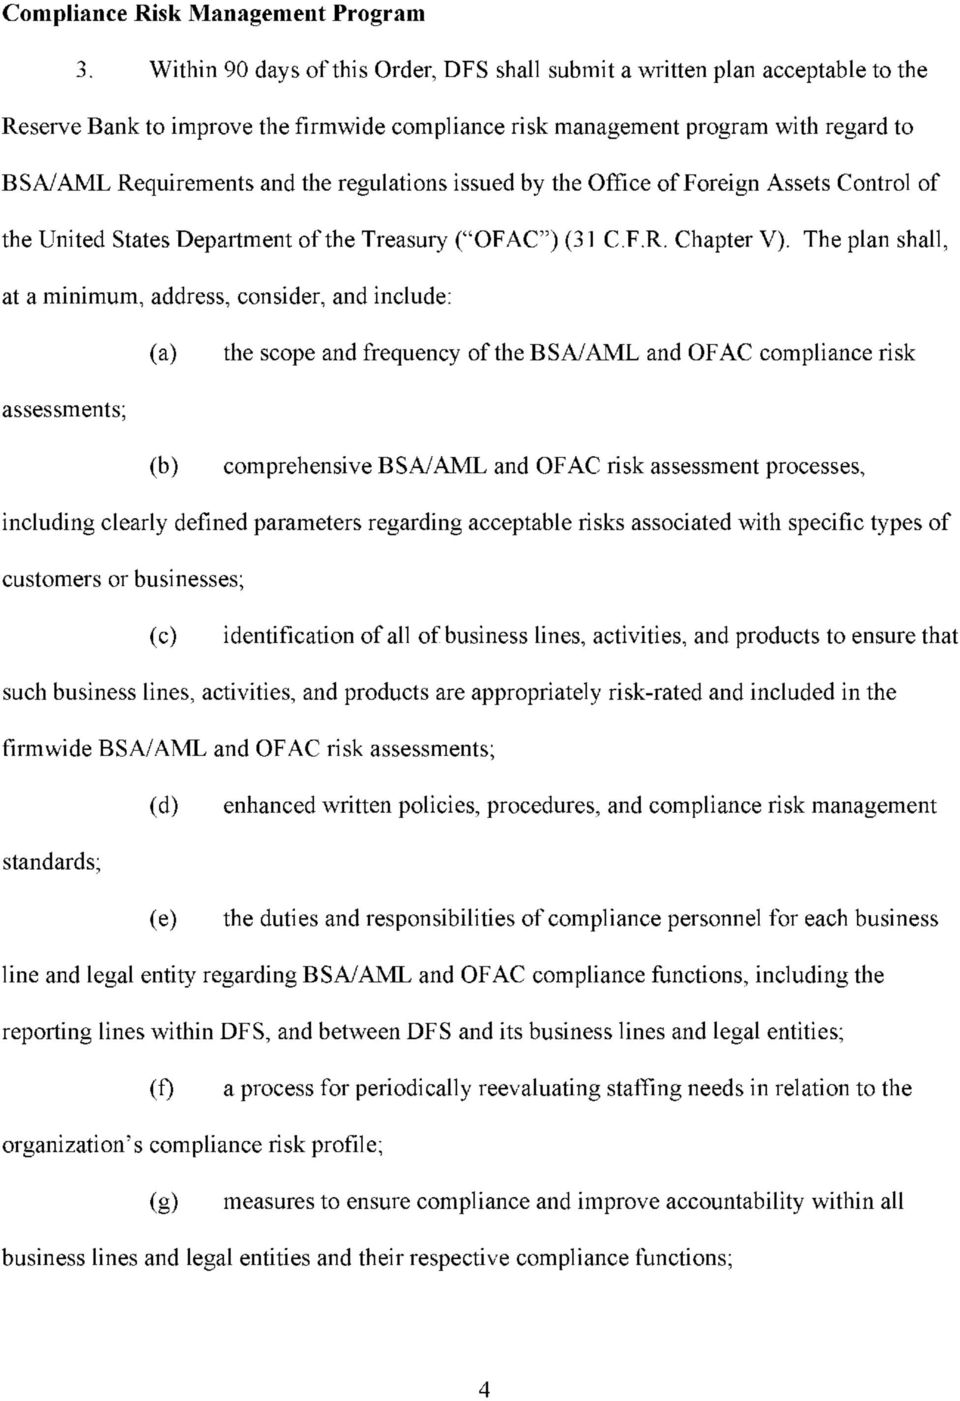 "regulations issued by the Office of Foreign Assets Control of the United States Department of the Treasury (""OFAC"") (31 C.F.R. Chapter V)."